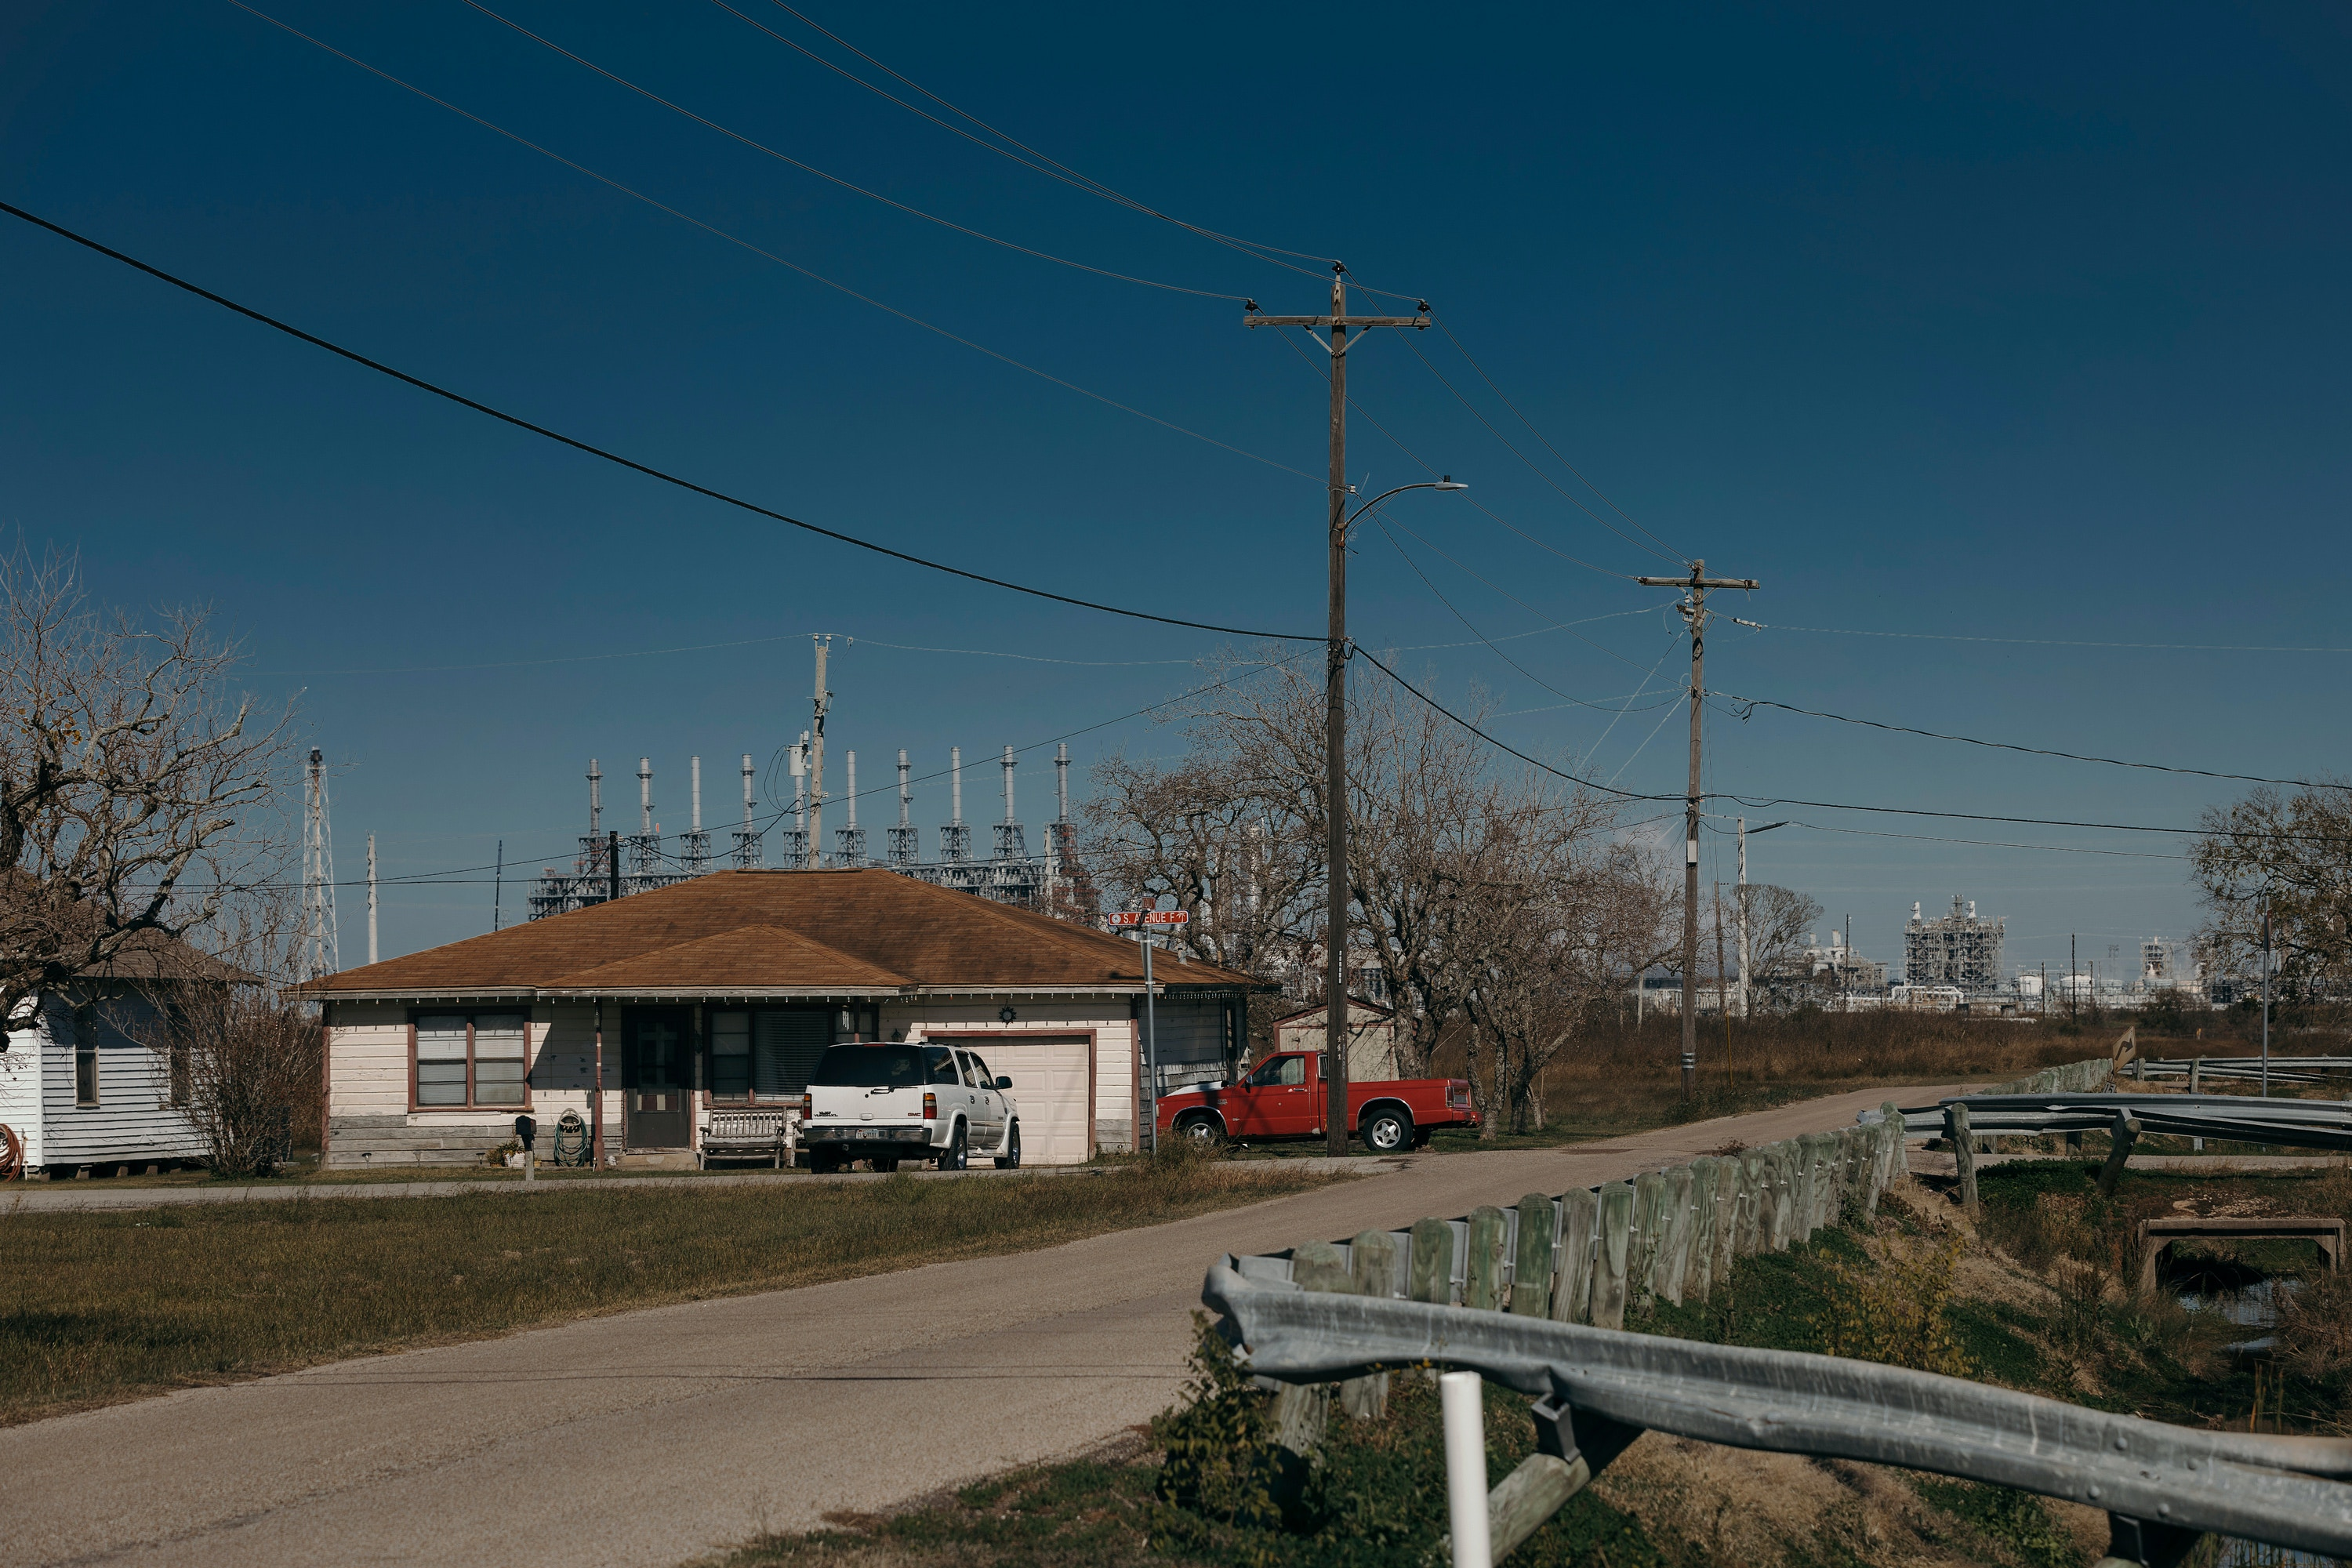 Scenes from Freeport, Texas on Wednesday, December 18th, 2019. Todd Spoth for The Intercept.